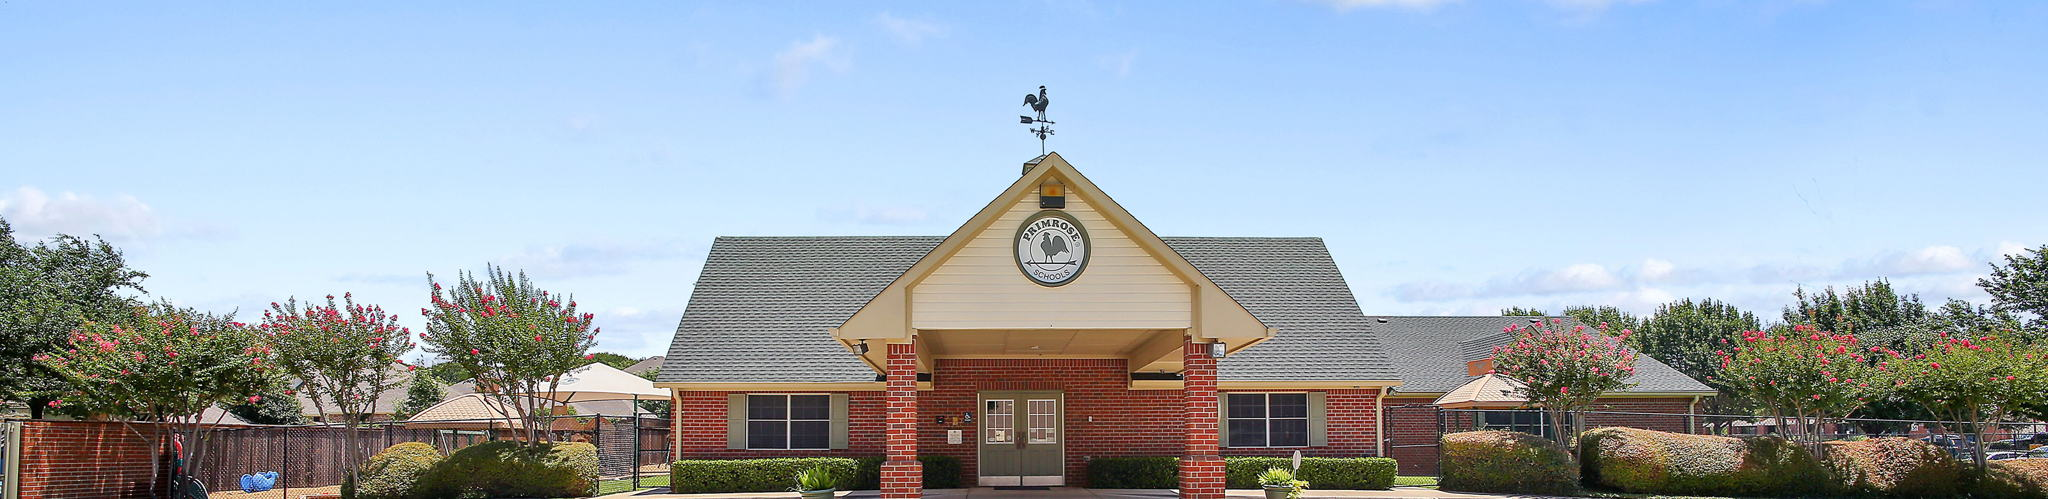 Exterior of a Primrose School of Grapevine Colleyville